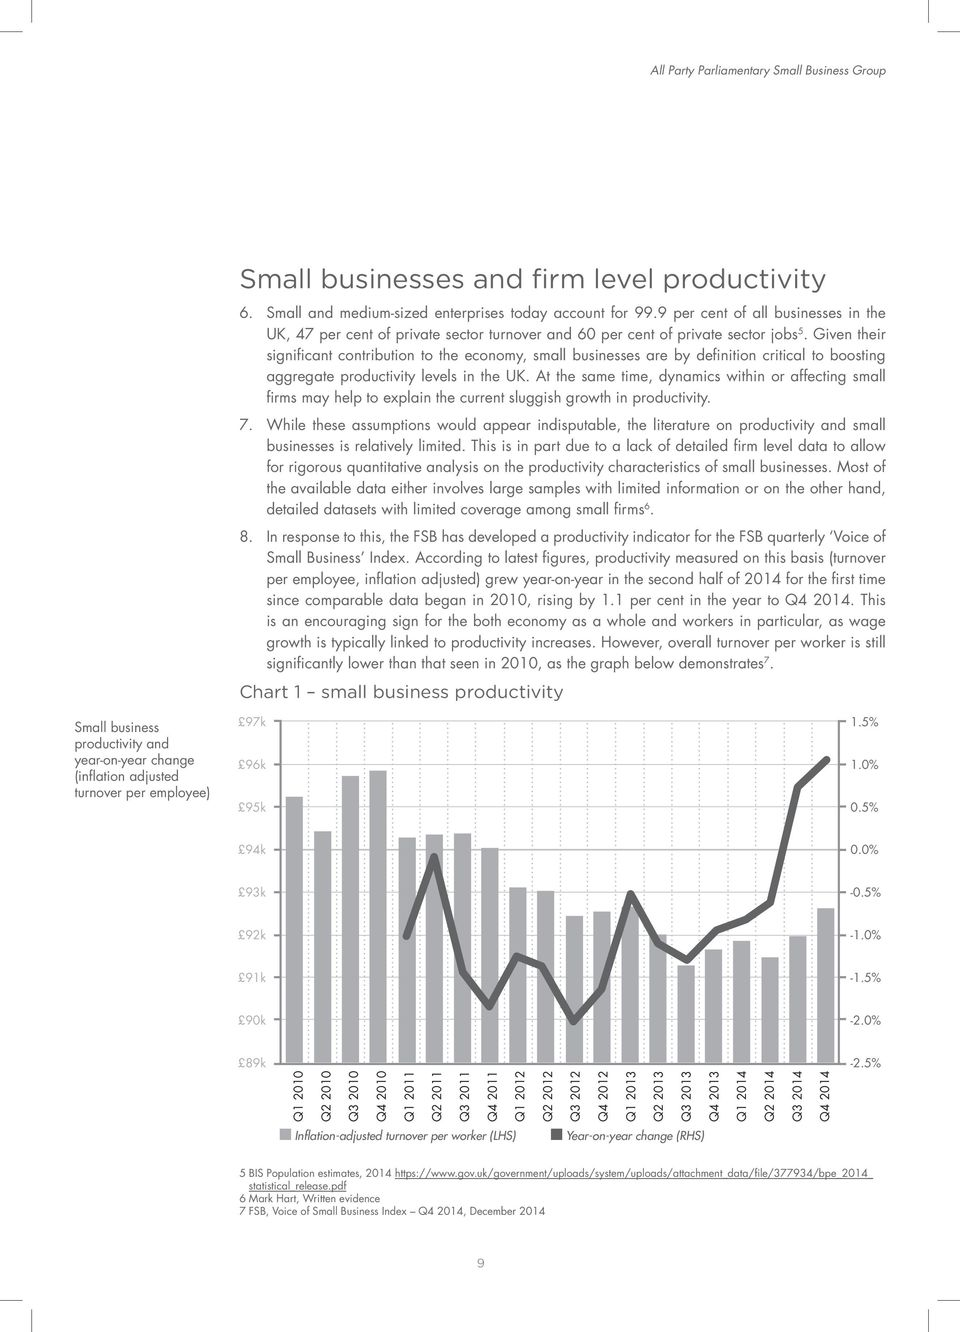 Given their significant contribution to the economy, small businesses are by definition critical to boosting aggregate productivity levels in the UK.